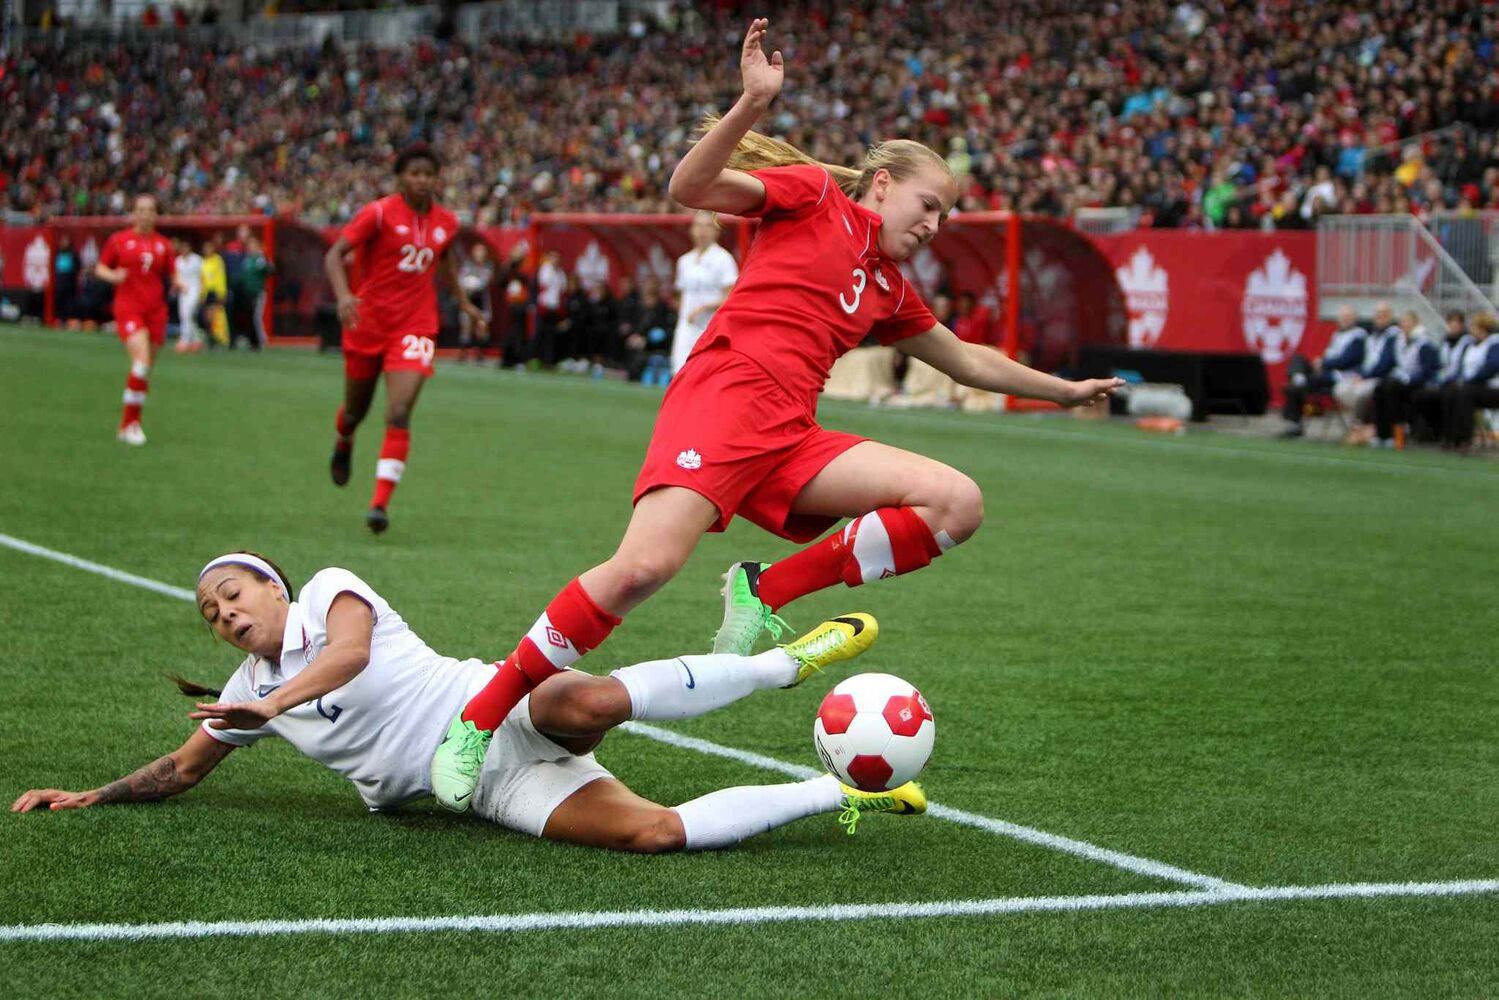 Canada's Rebecca Quinn (#3) and USA's Sydney Leroux (#2) collide while scrambling for the ball during the first half of Thursday's game at Investors Group Field. (Ruth Bonneville / Winnipeg Free Press)